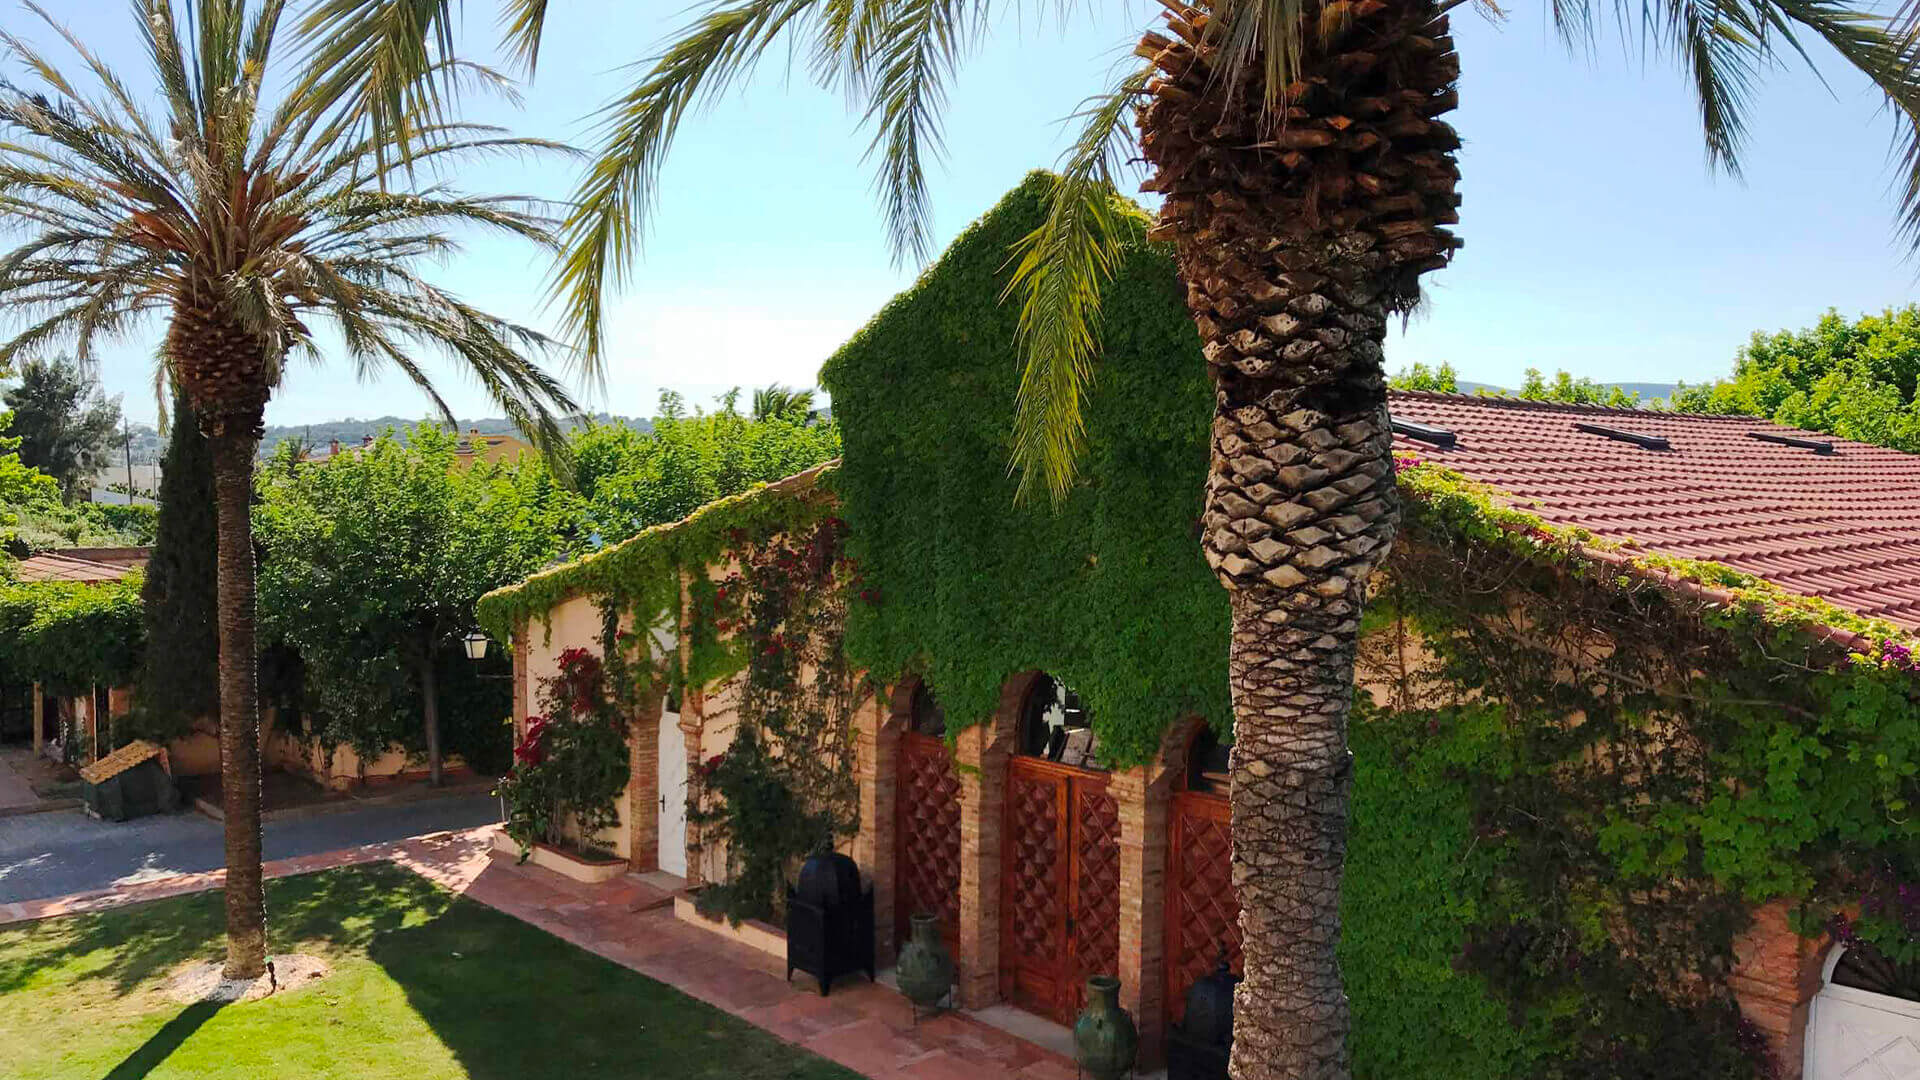 Large property outside Barcelona villa garden with palms and plants